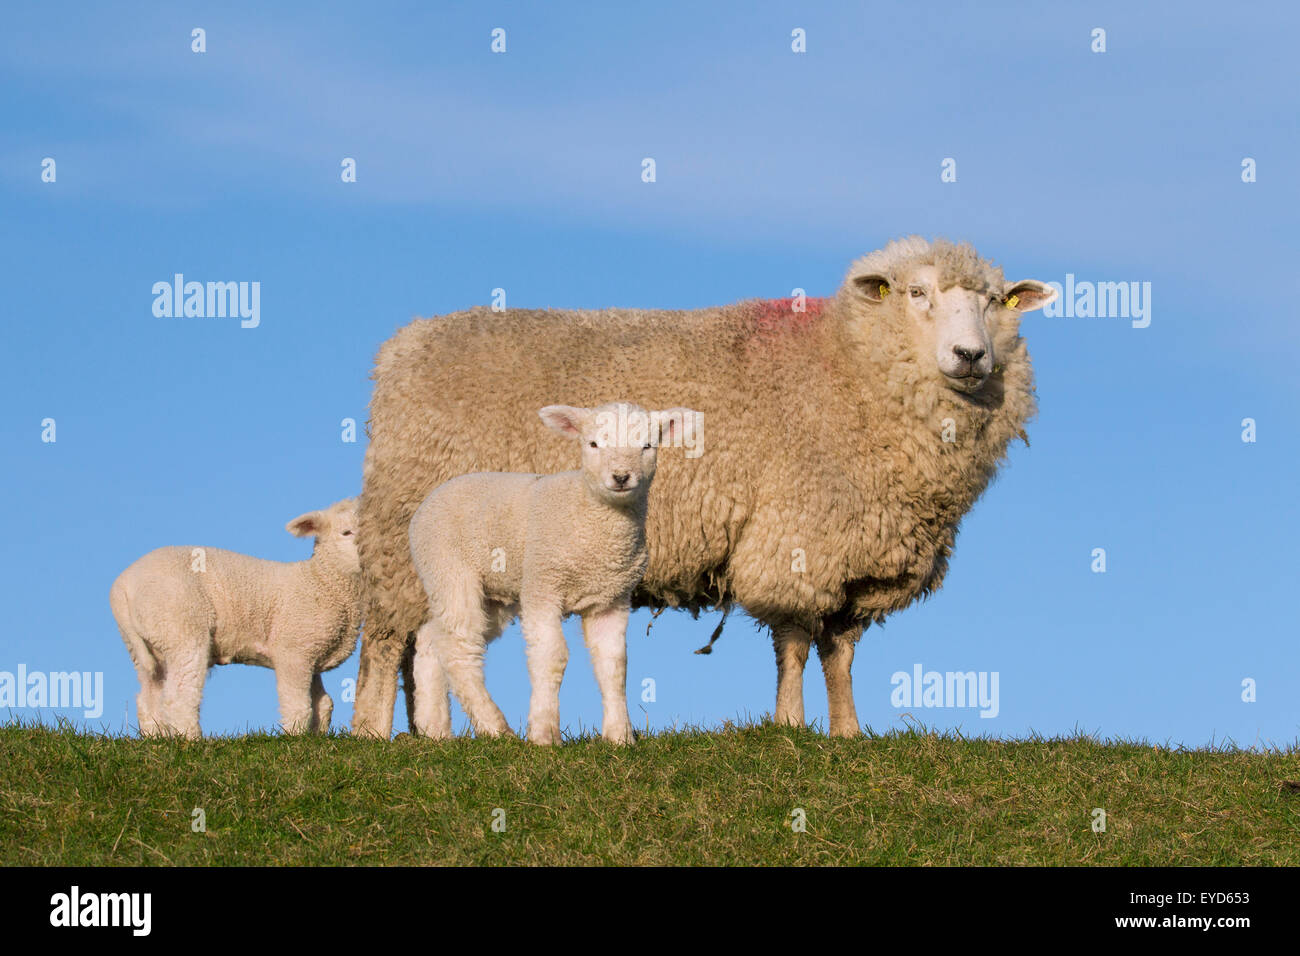 Friesian dairy sheep ewe with two white lambs in meadow, North Frisia, Germany - Stock Image